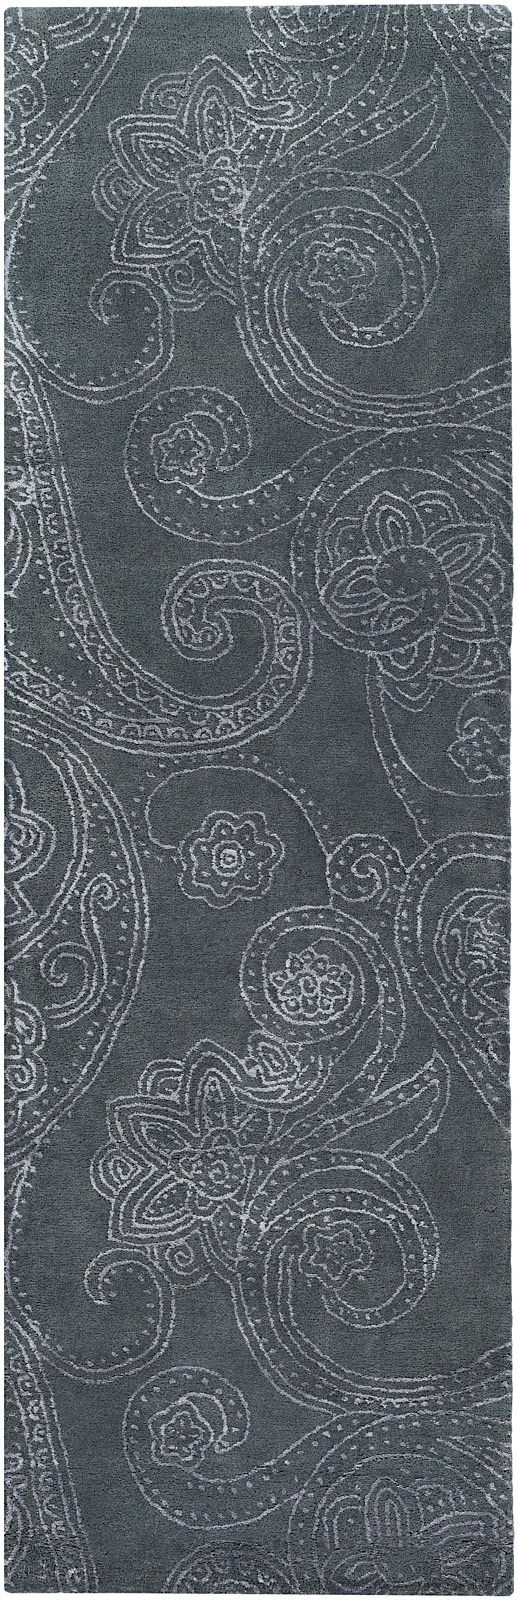 surya modern classics country & floral area rug collection